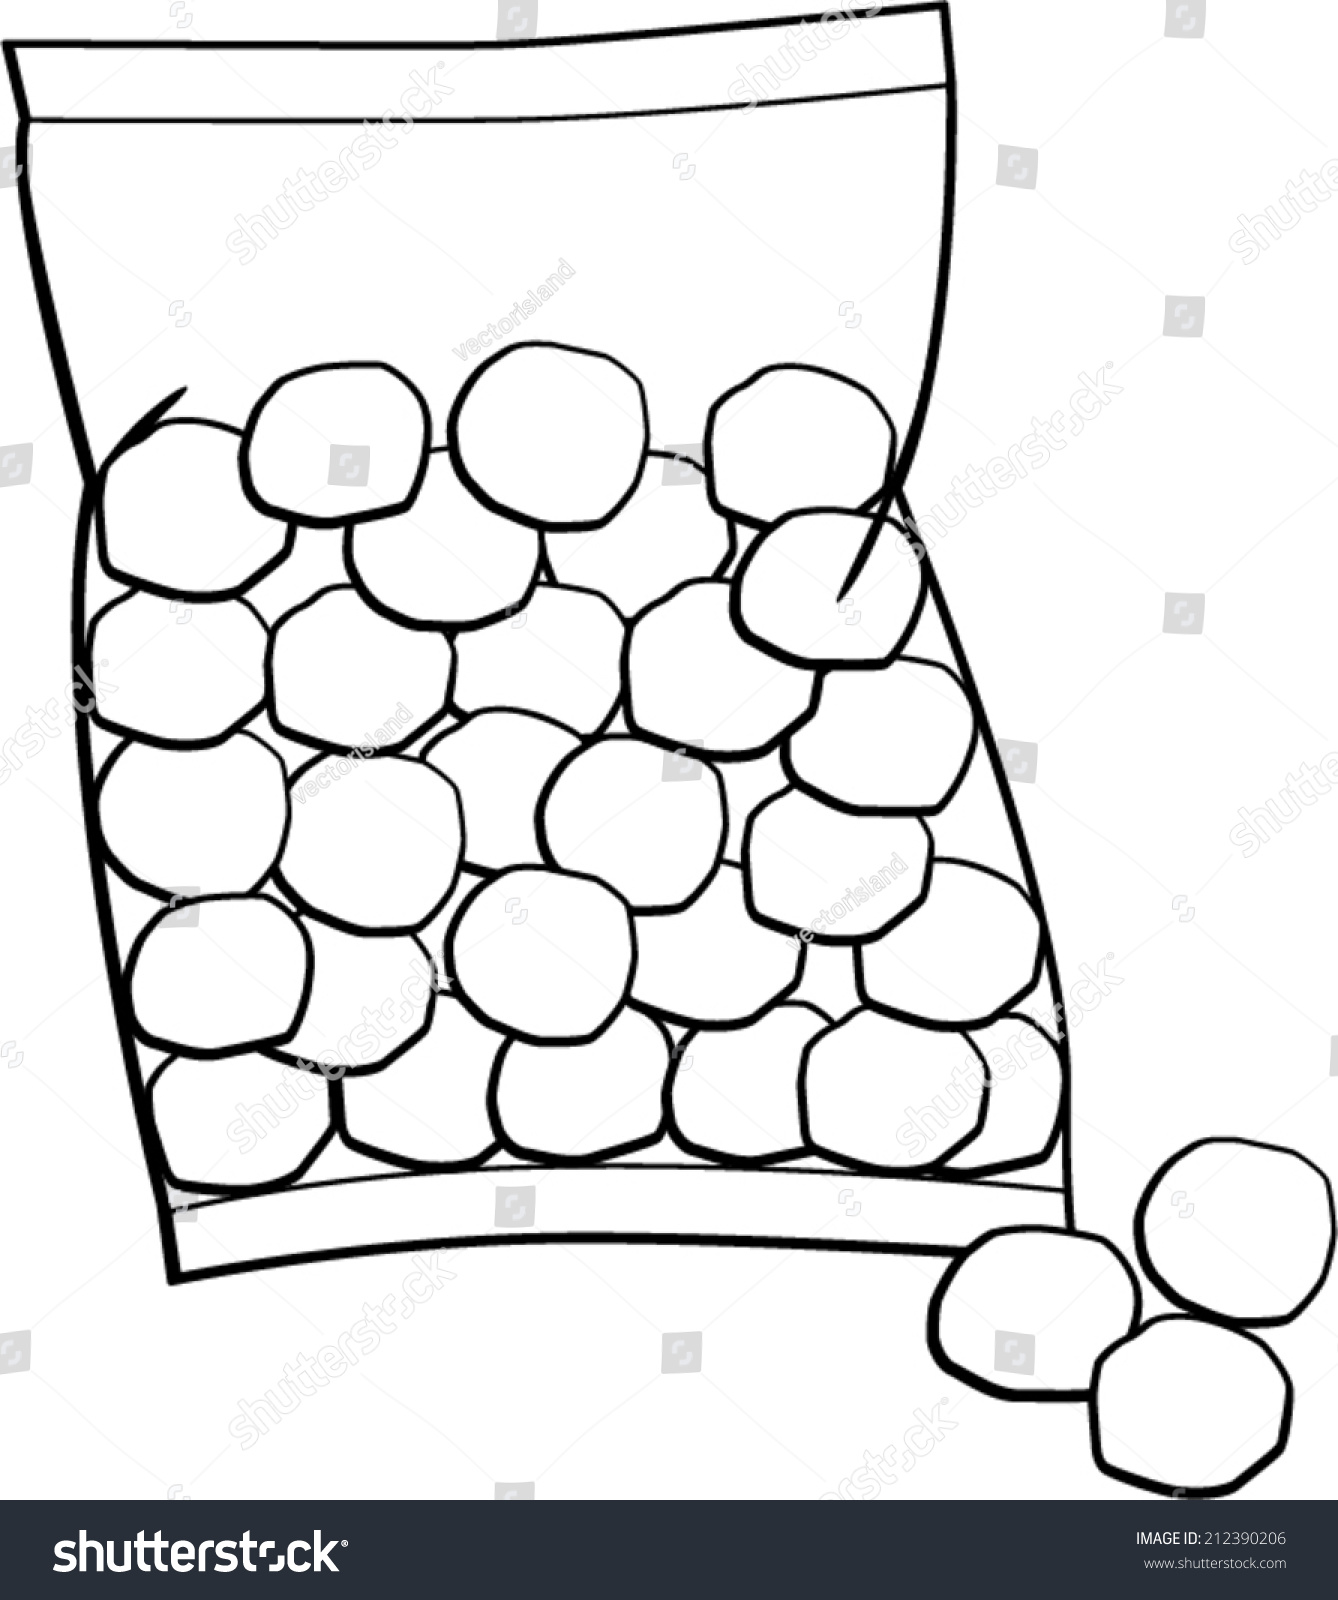 Cotton Balls Clipart cotton balls bag stock vector illustration ...